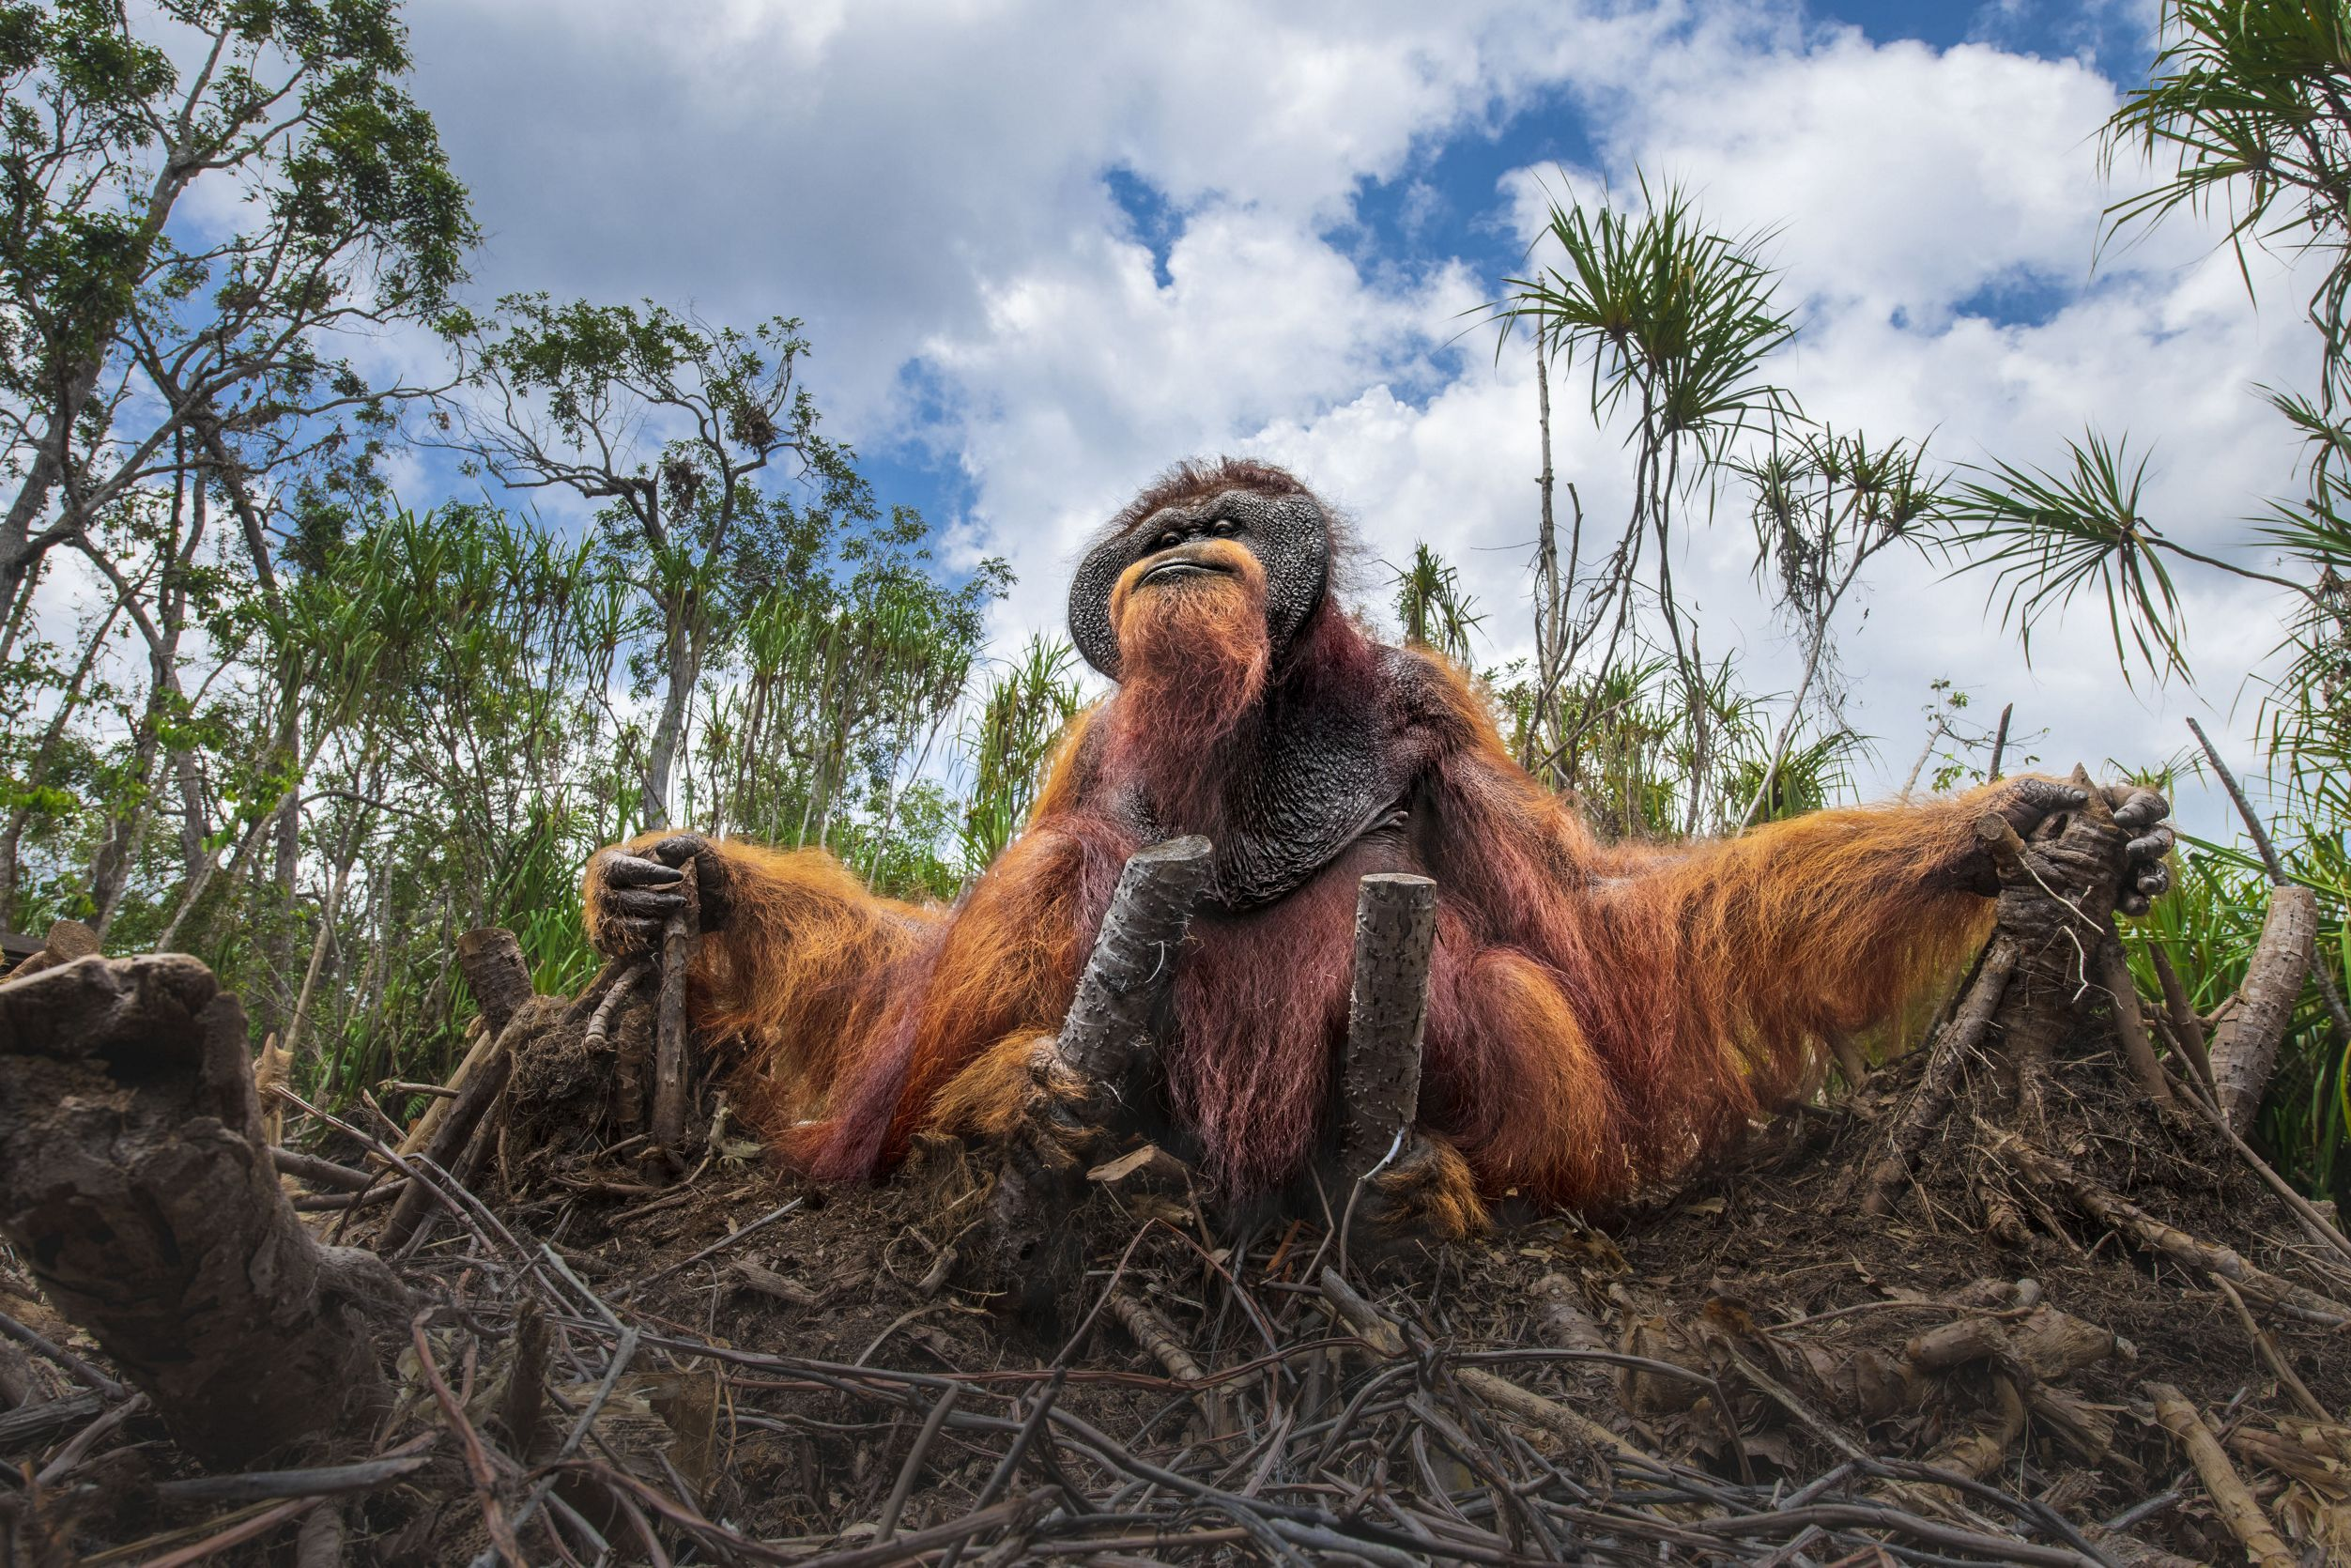 Orangutans are accustomed to live on trees and feed on wild fruits like lychees, mangosteens, and figs, and slurp water from holes in trees